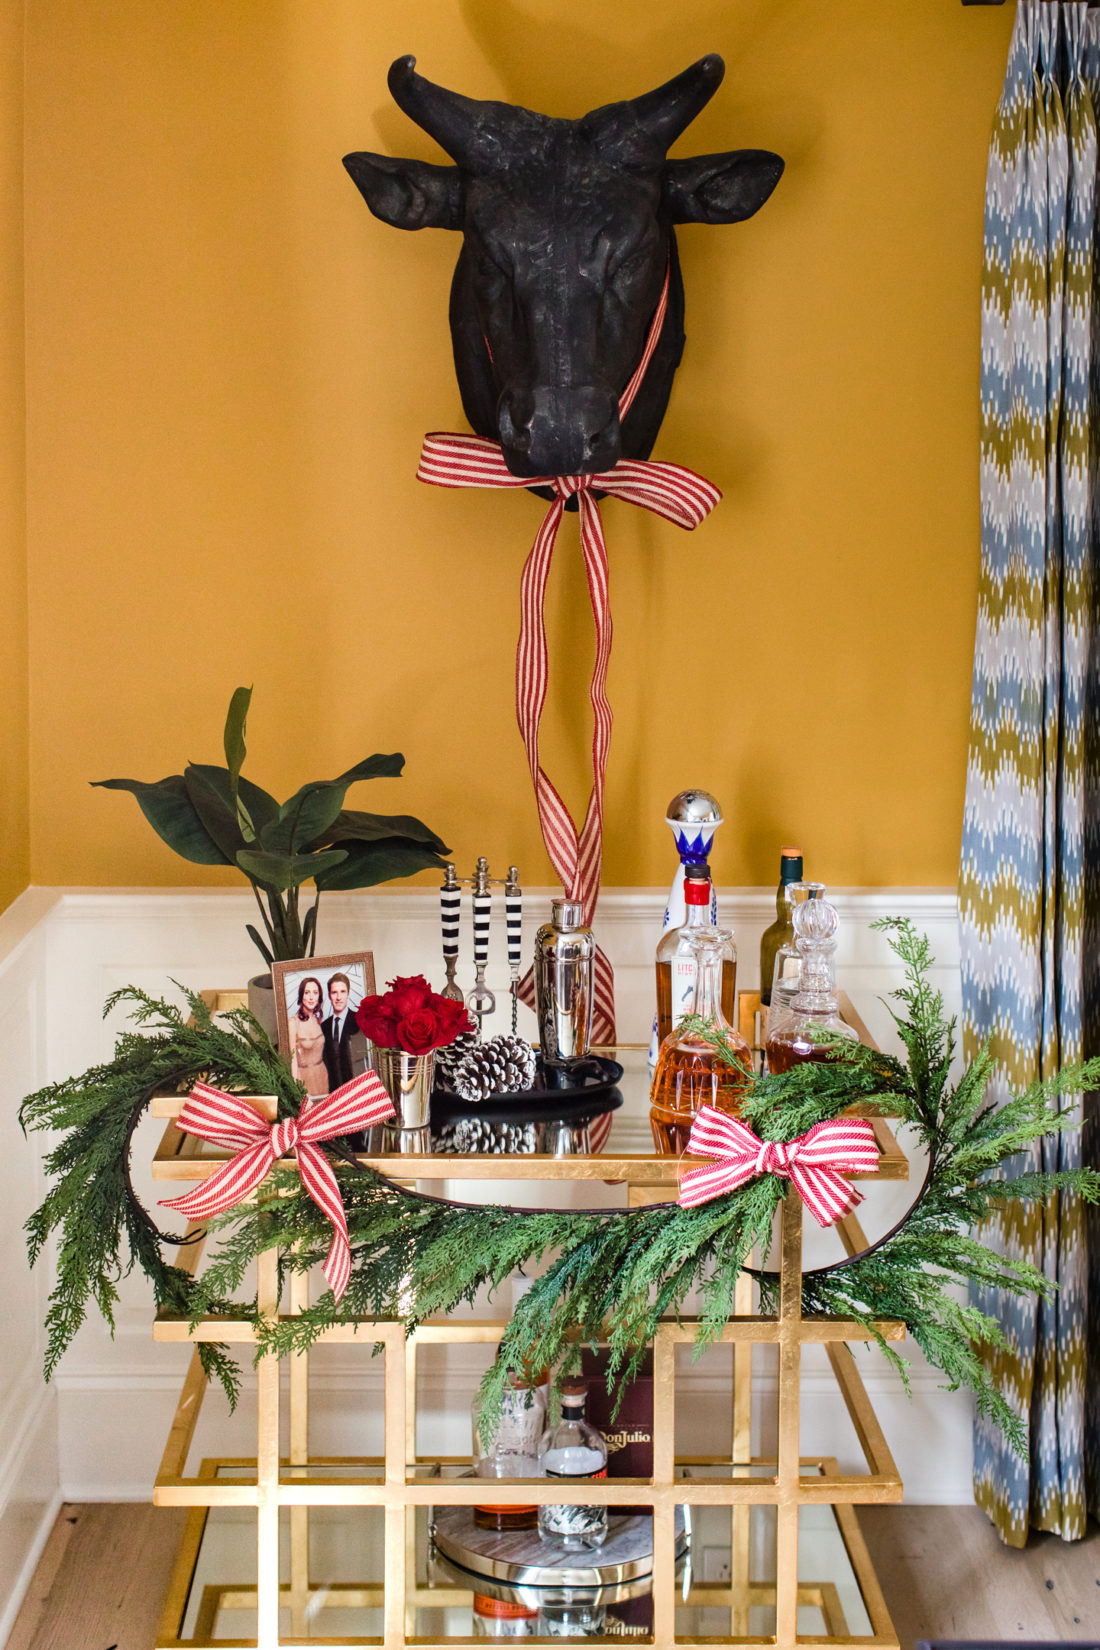 Eva Amurri Martino's bar cart in her Connecticut home is decked out for a classic christmas holiday party